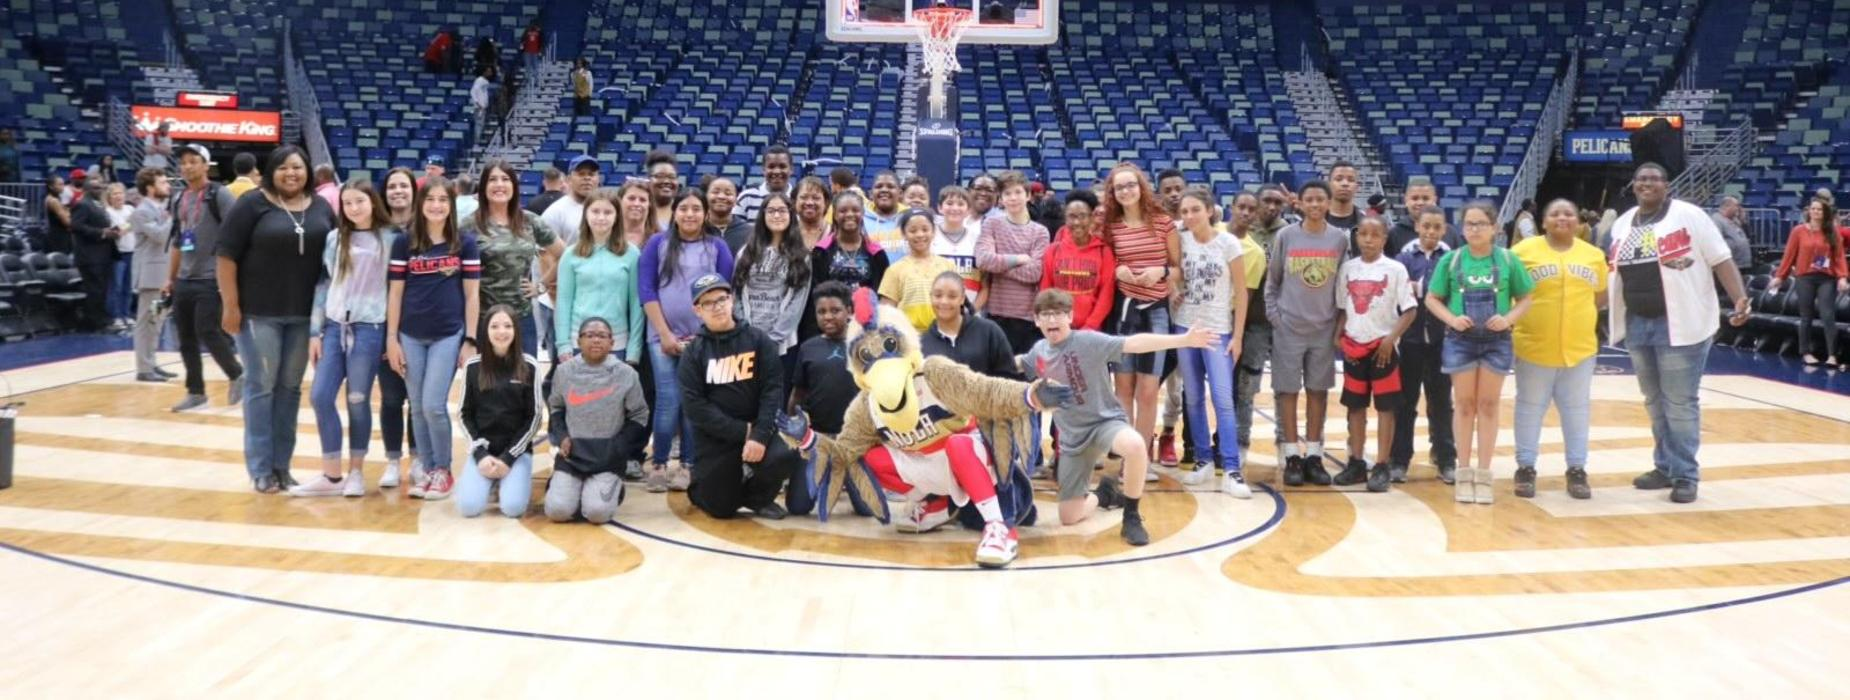 Sunset Middle School students were able to experience a New Orleans Pelicans game as an incentive for having perfect attendance for Saturday tutoring sessions. Weekly PBIS drawing winners were also invited to attend.